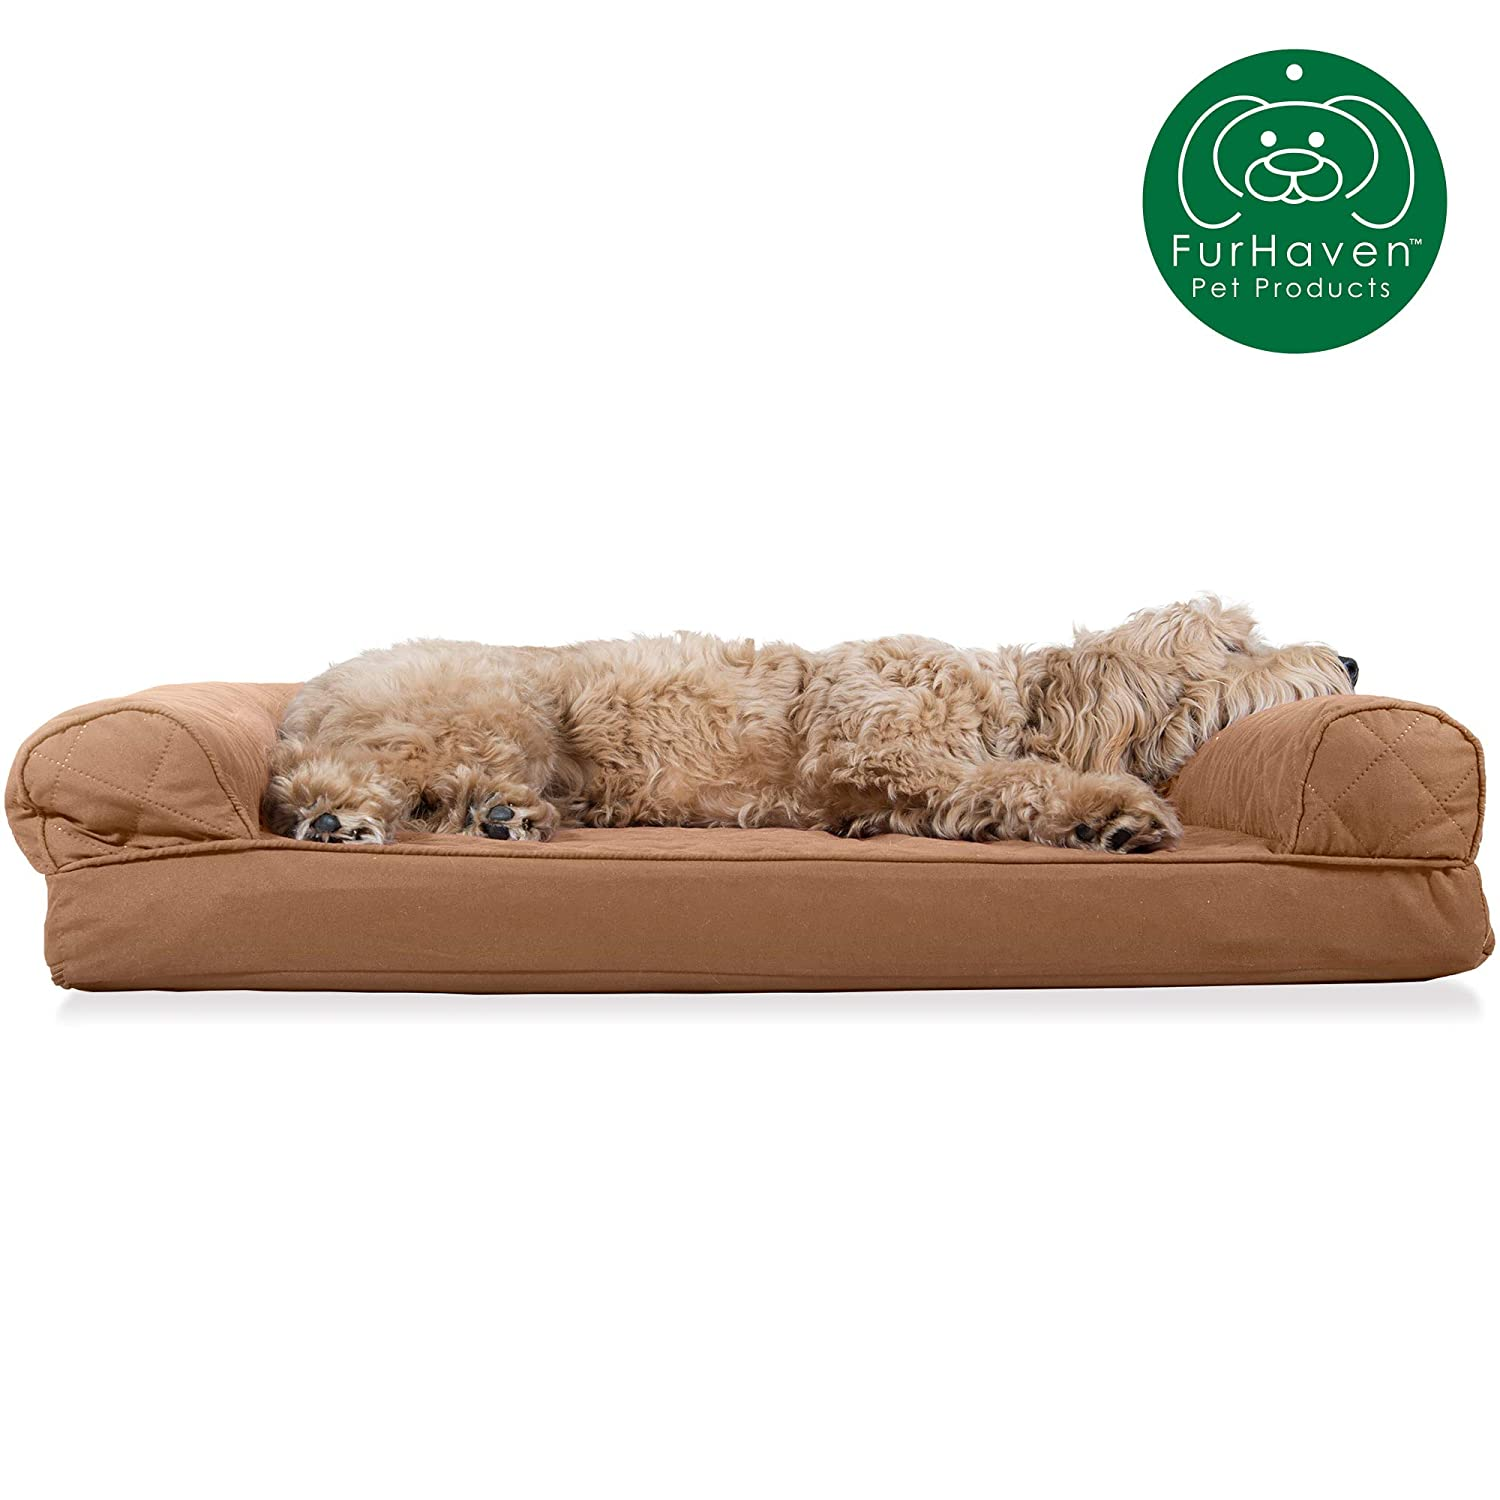 Groovy Furhaven Pet Dog Bed Orthopedic Sofa Style Traditional Living Room Couch Pet Bed W Removable Cover For Dogs Cats Available In Multiple Colors Short Links Chair Design For Home Short Linksinfo